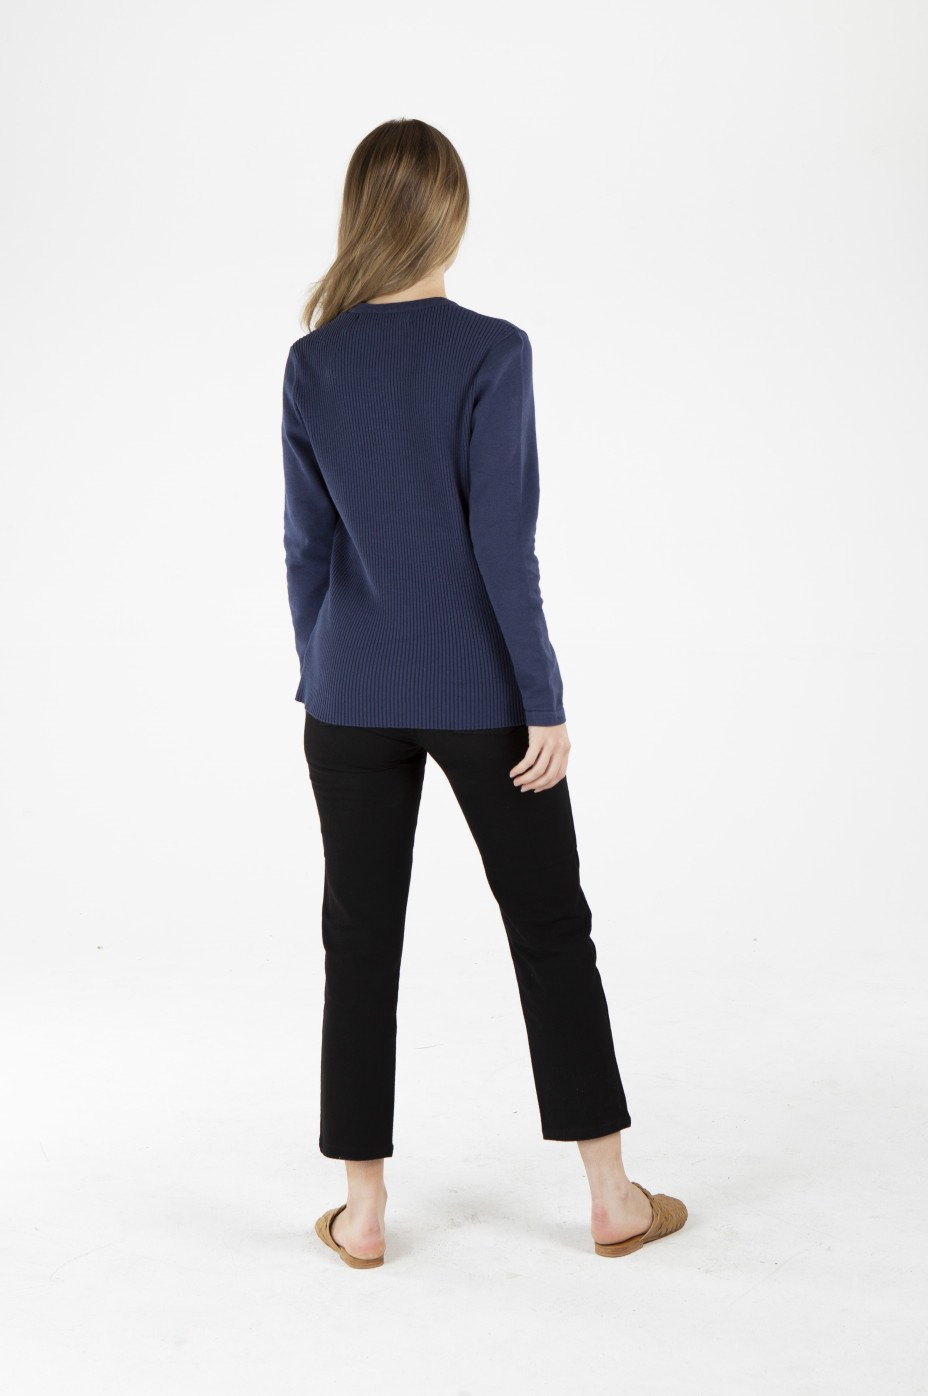 Ladies' Hemp Cotton Knit Jumper-Navy